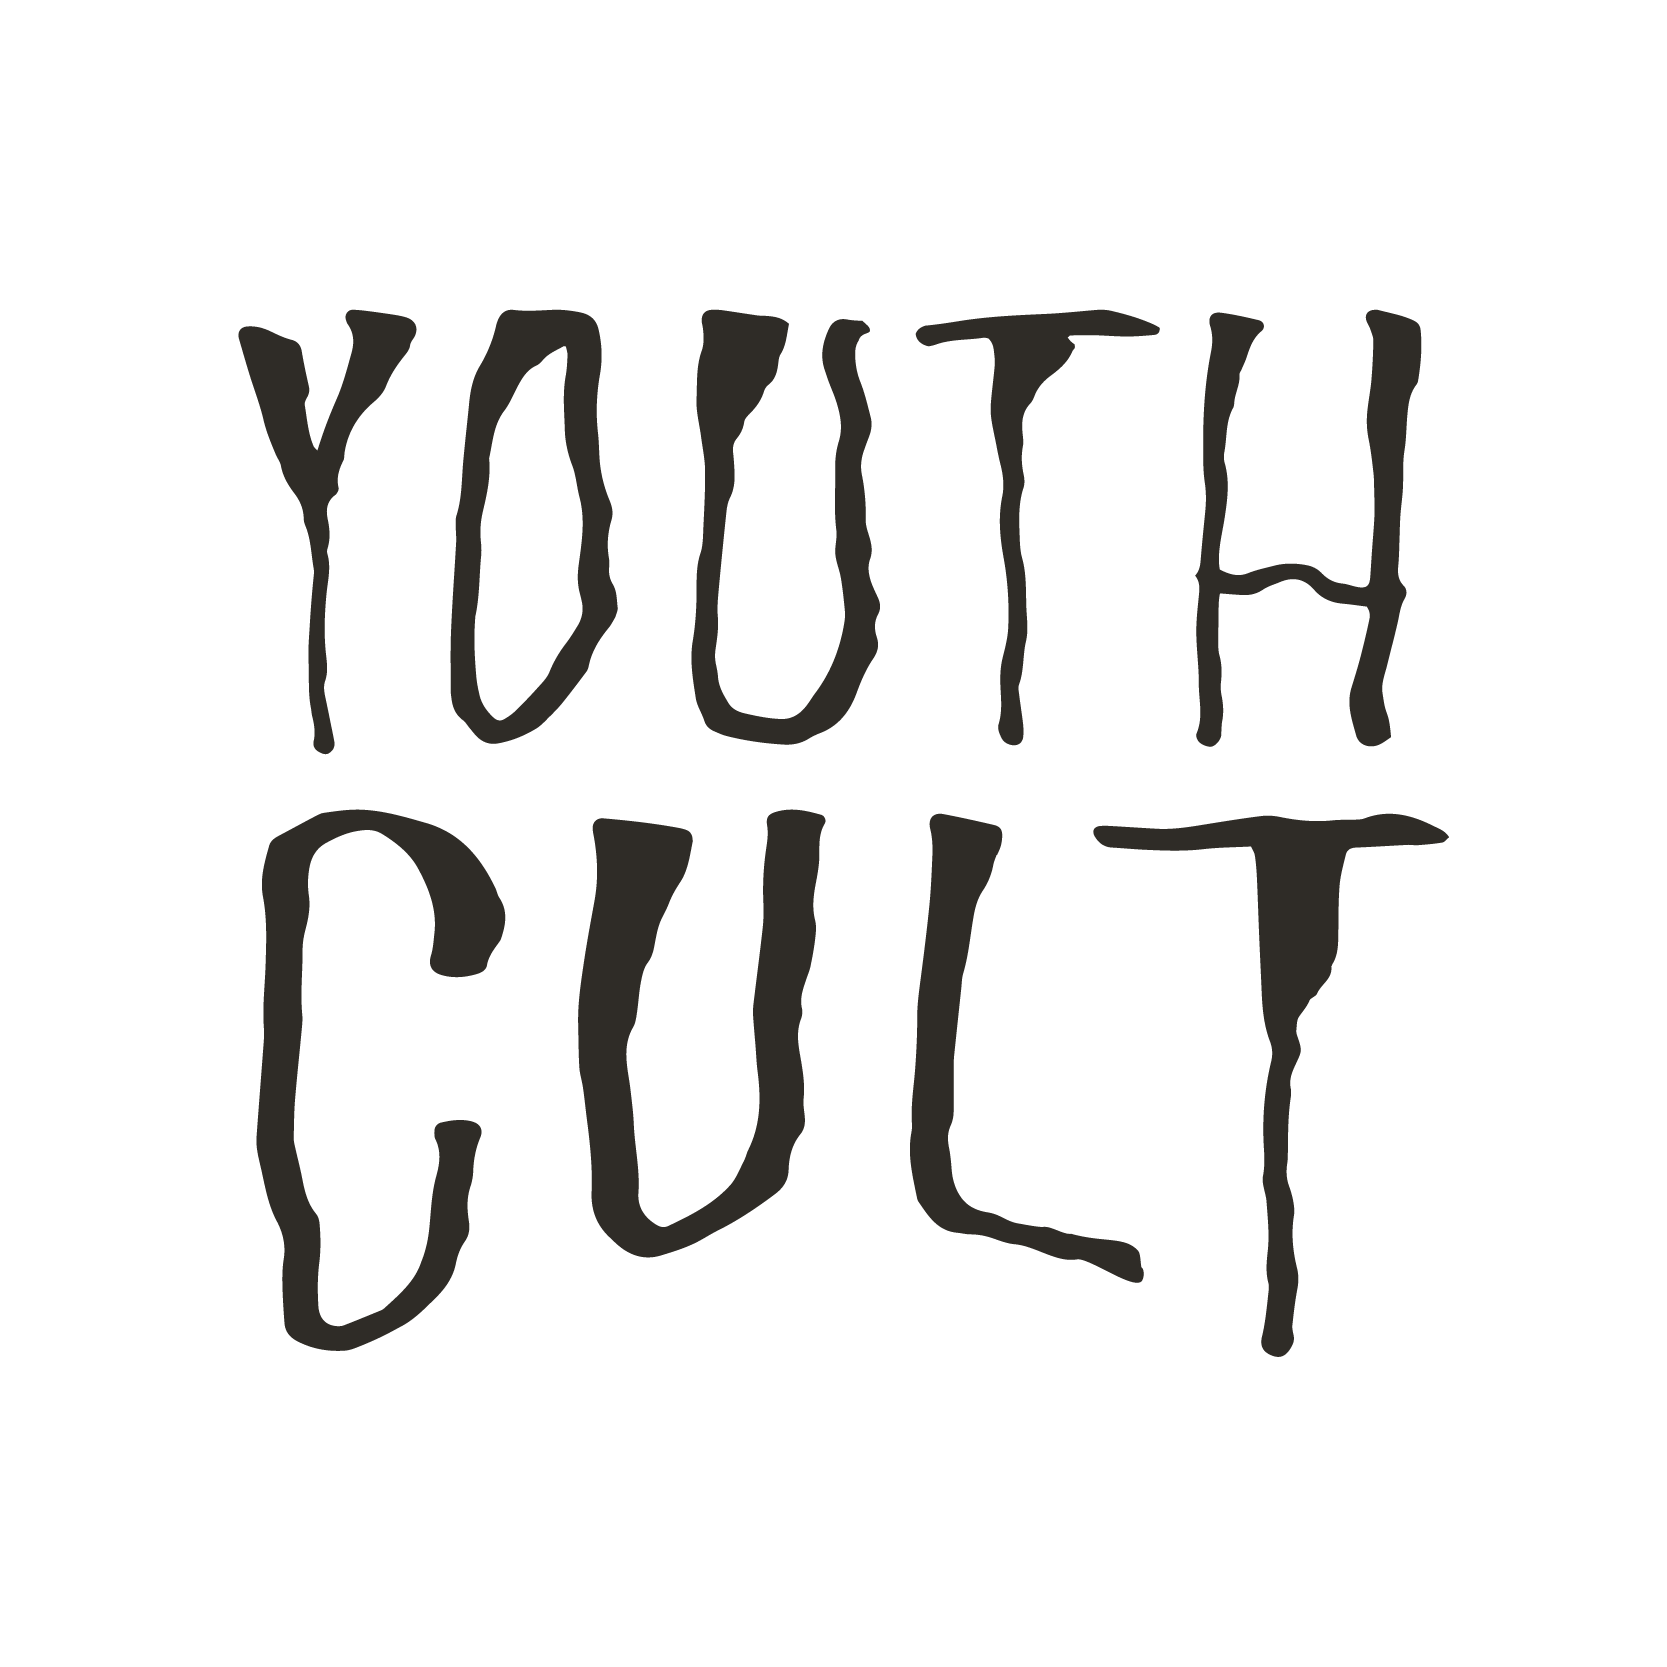 Youth Cult